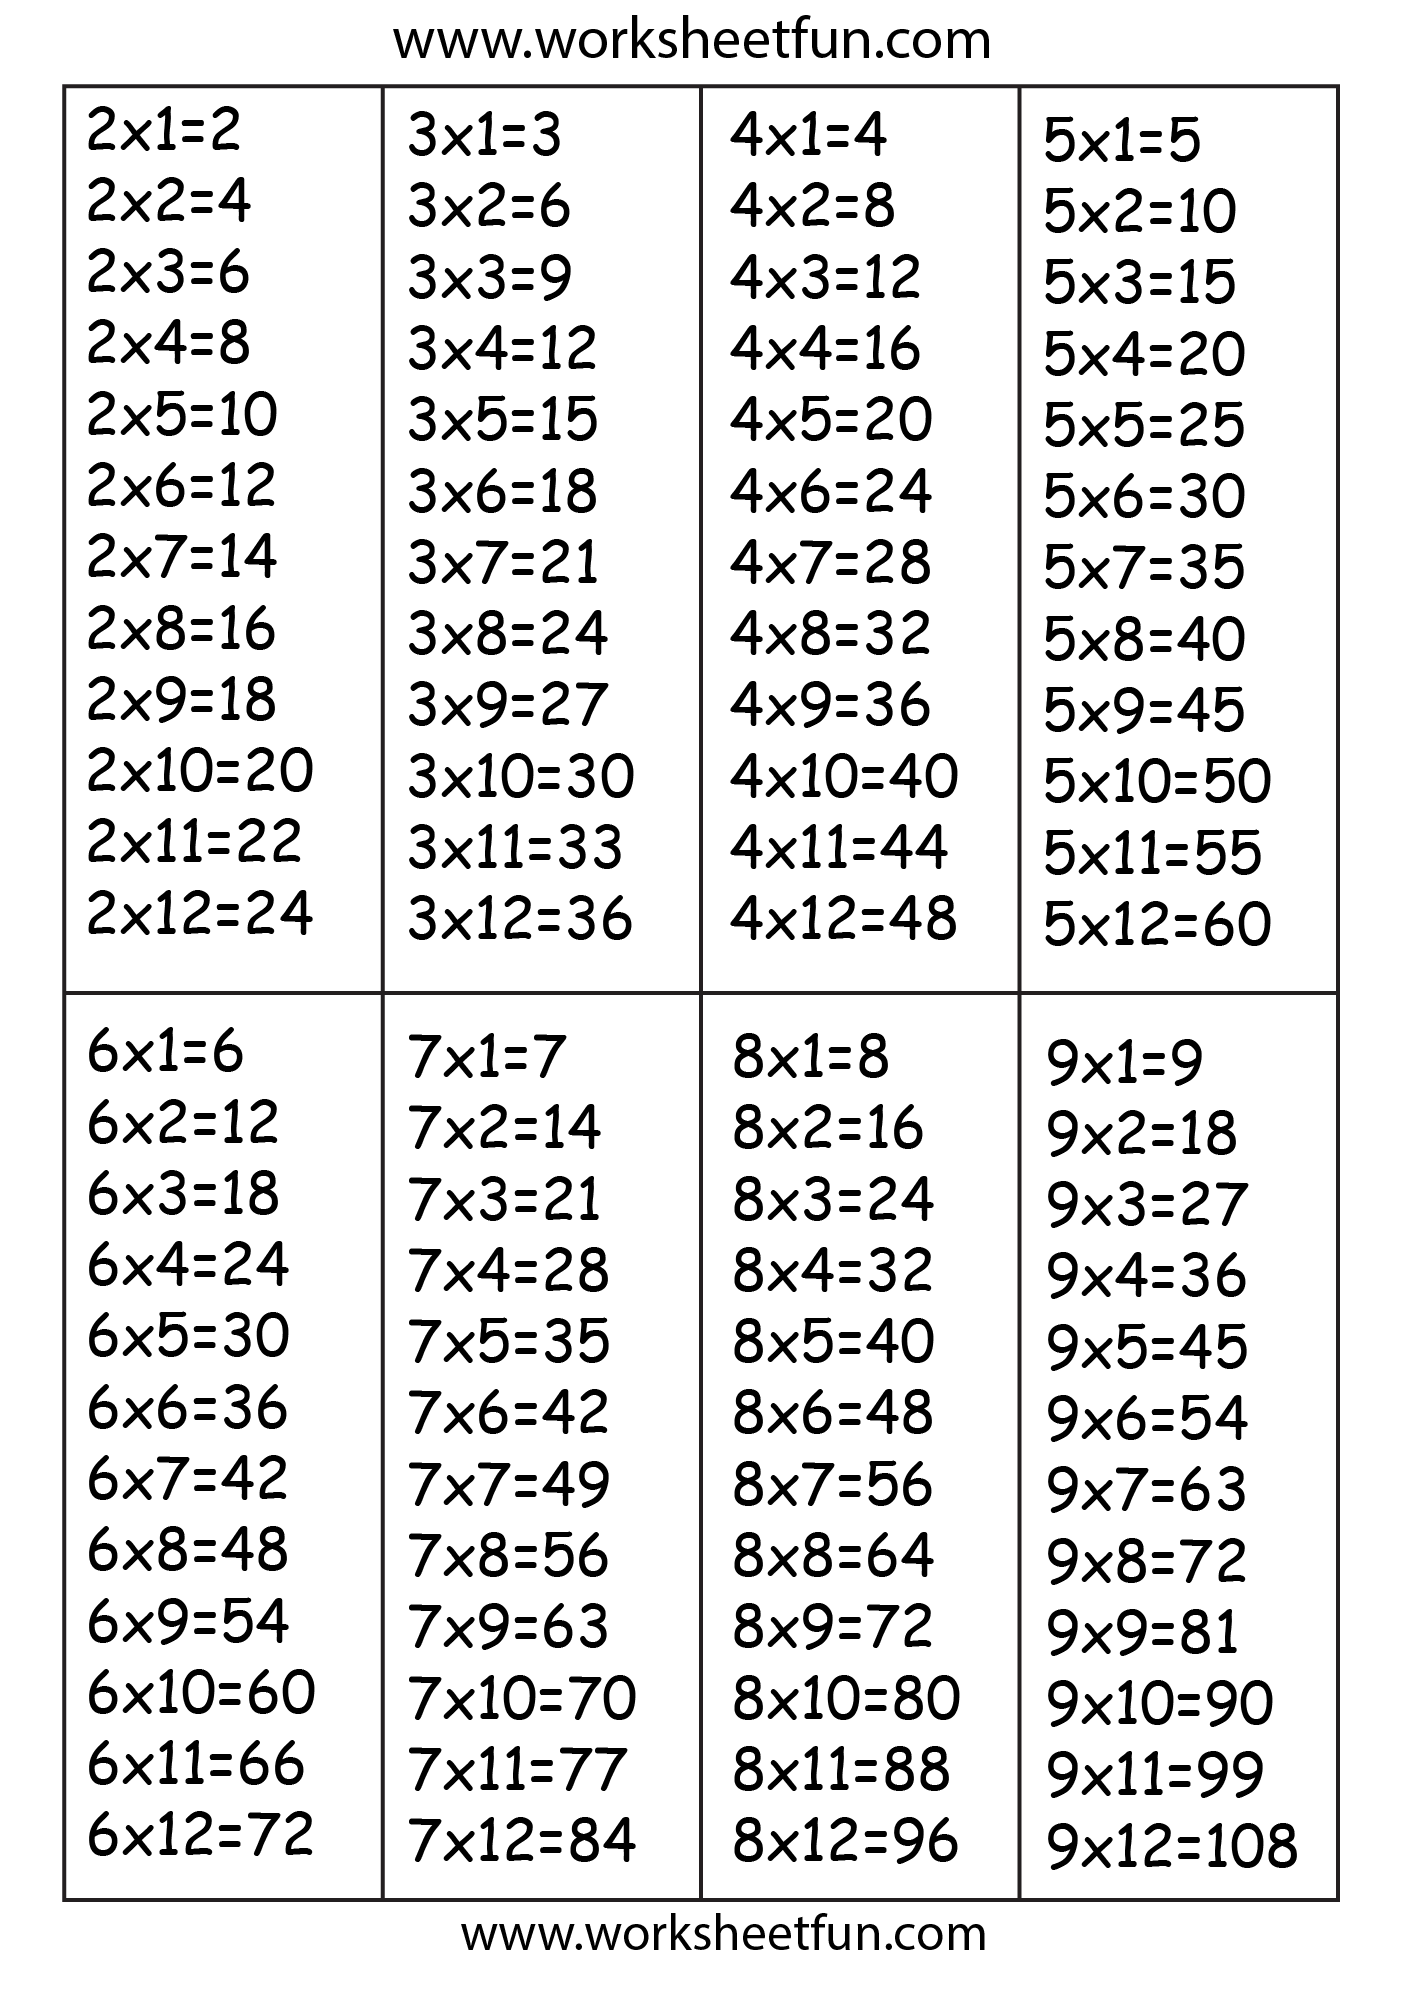 Times Table Chart 2 3 4 5 6 7 8 Amp 9 Free Printable Worksheets Worksheetfun